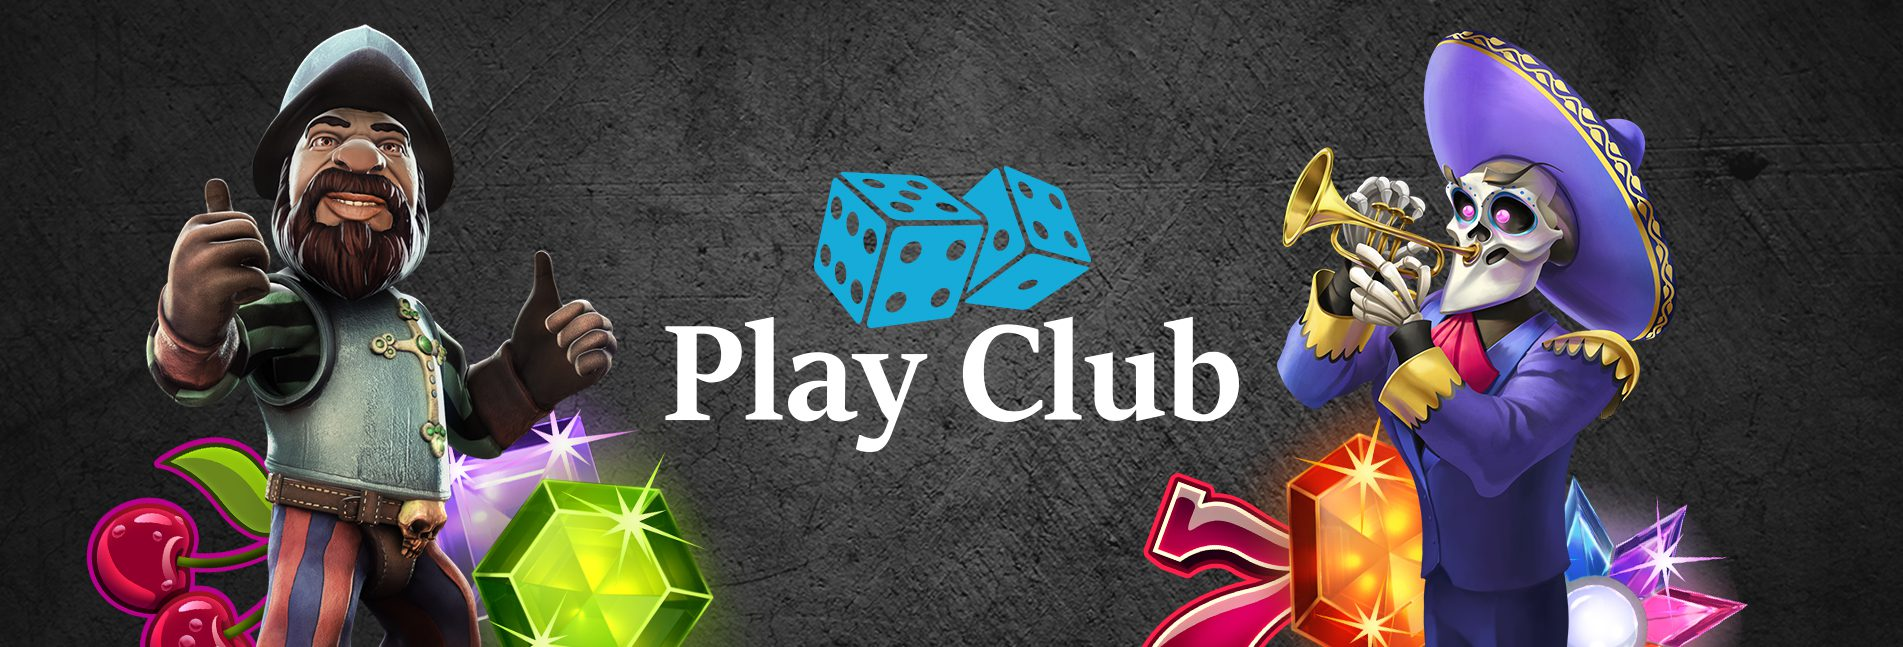 slider_playclub